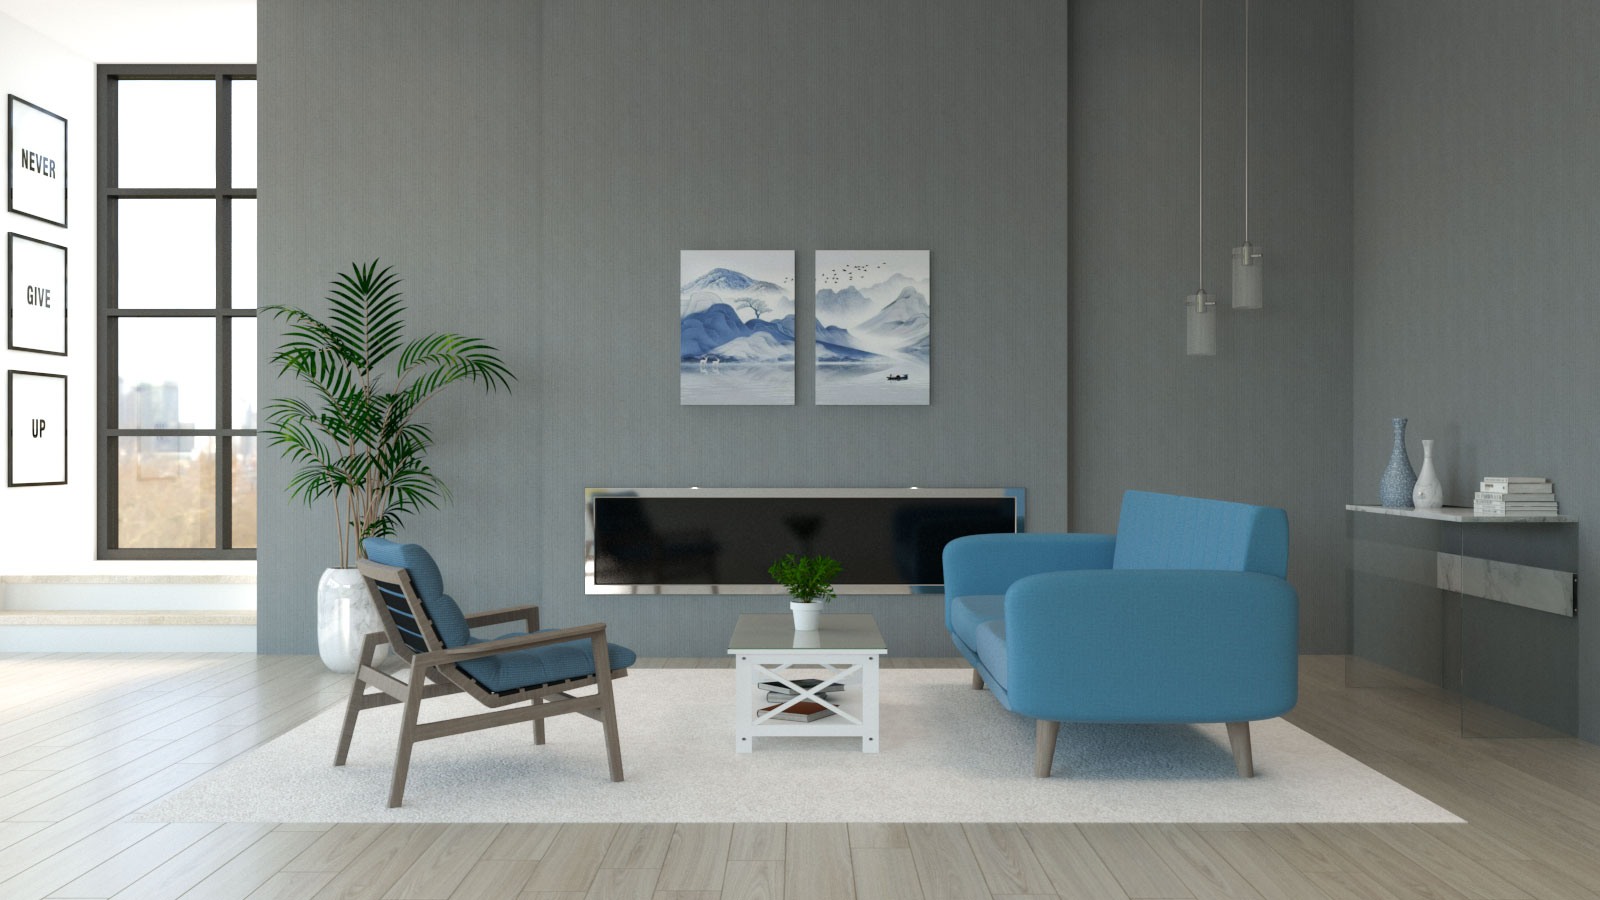 Living room with light blue furniture and gray walls